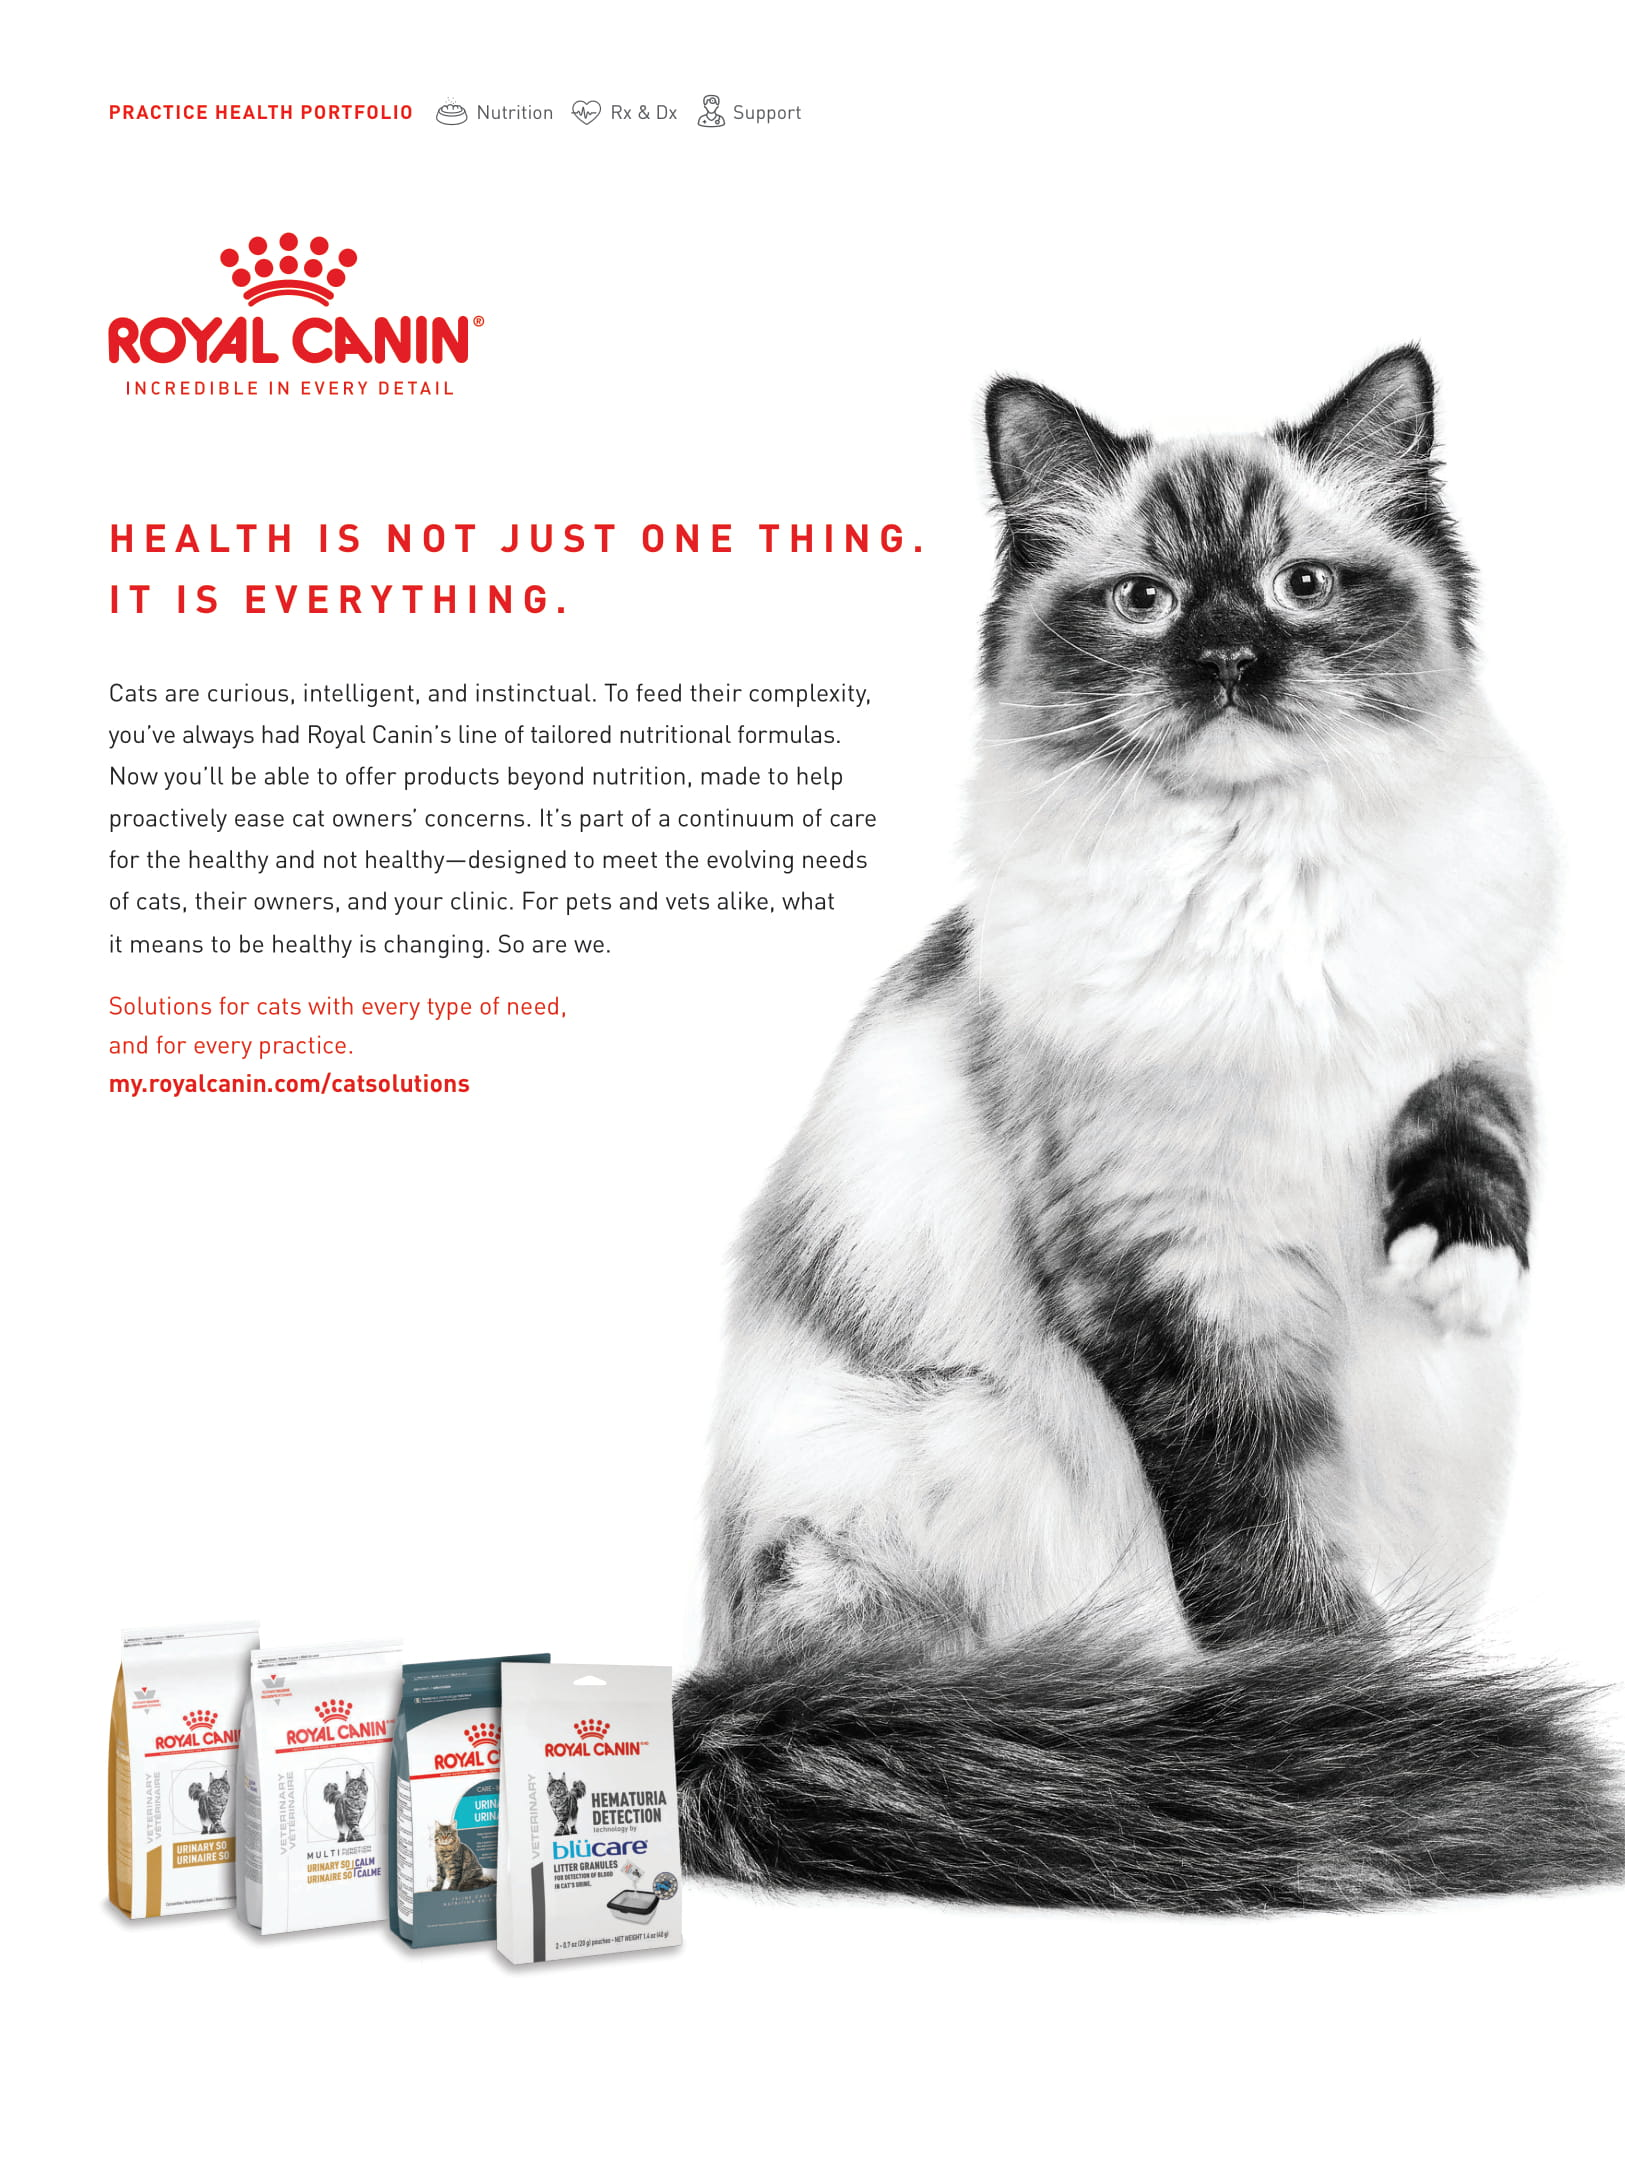 Royal Canin CB July 2020